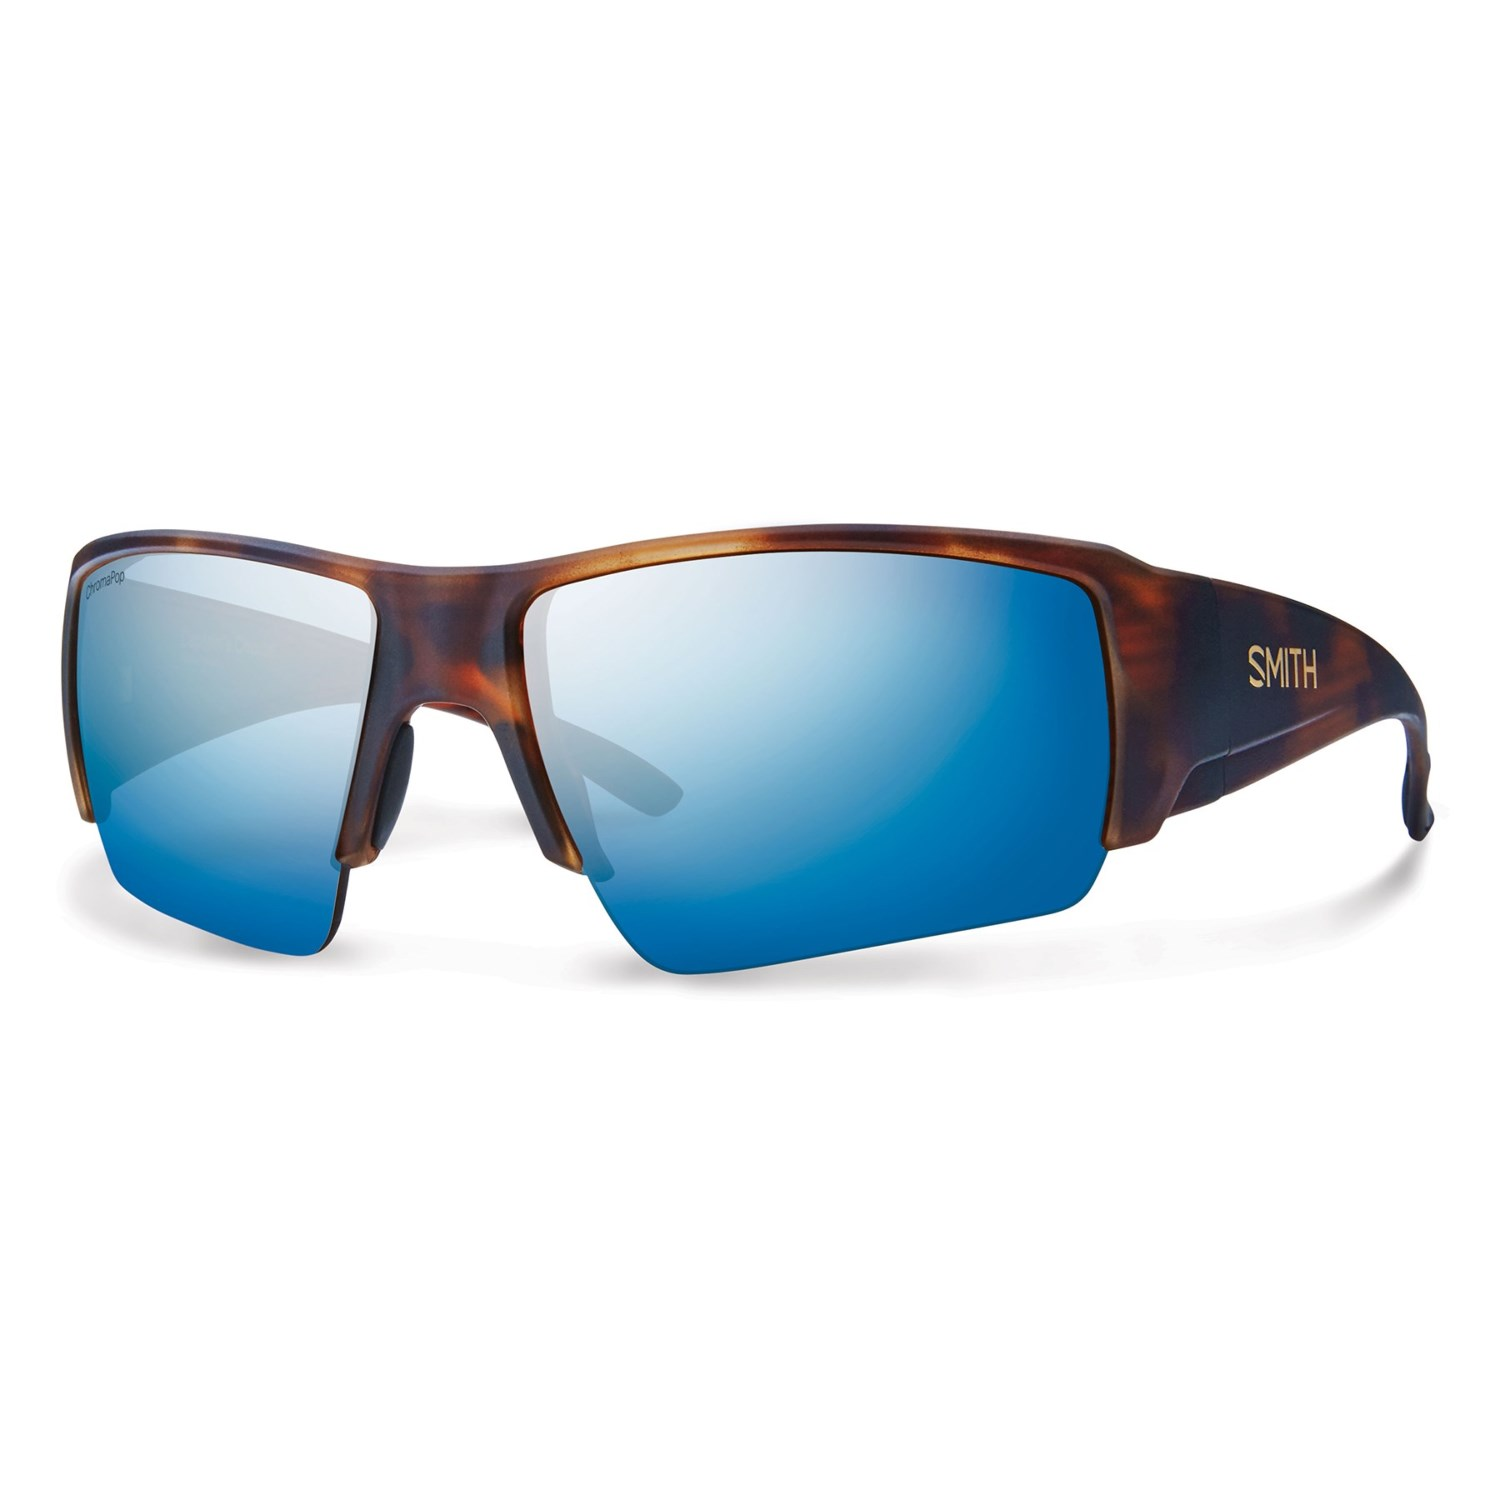 8b8cd9ac35 Smith Optics Nomad Polarized Sunglasses With Chromapop